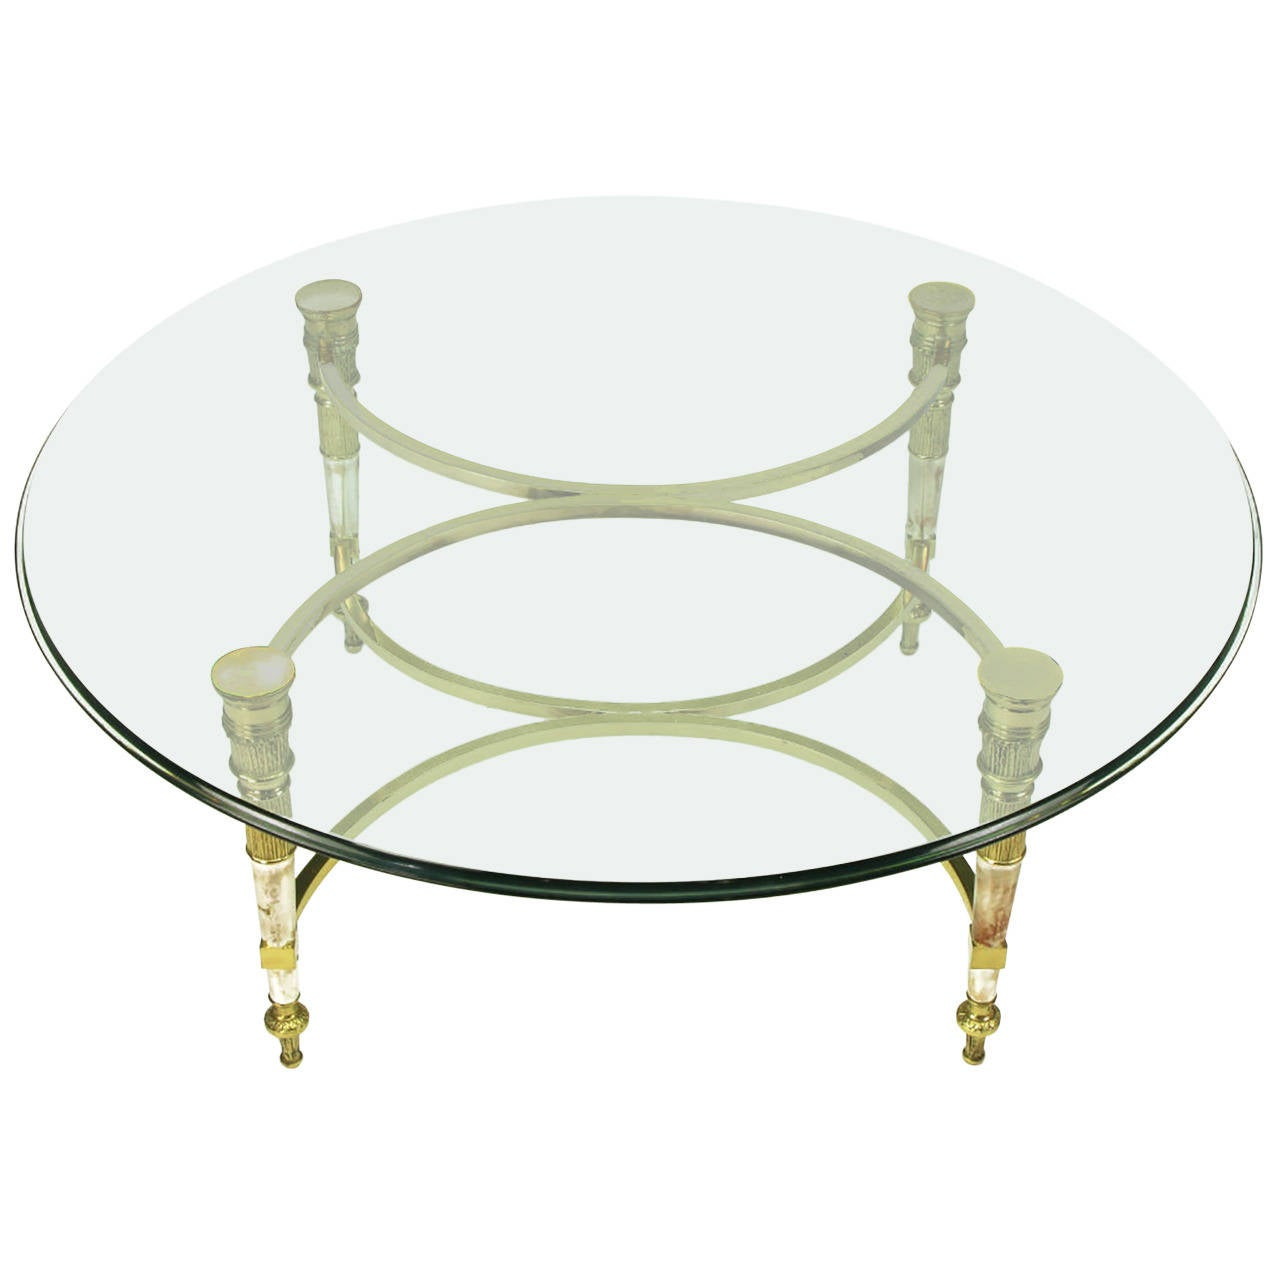 Brass and Aged Nickel Empire Style Coffee Table For Sale